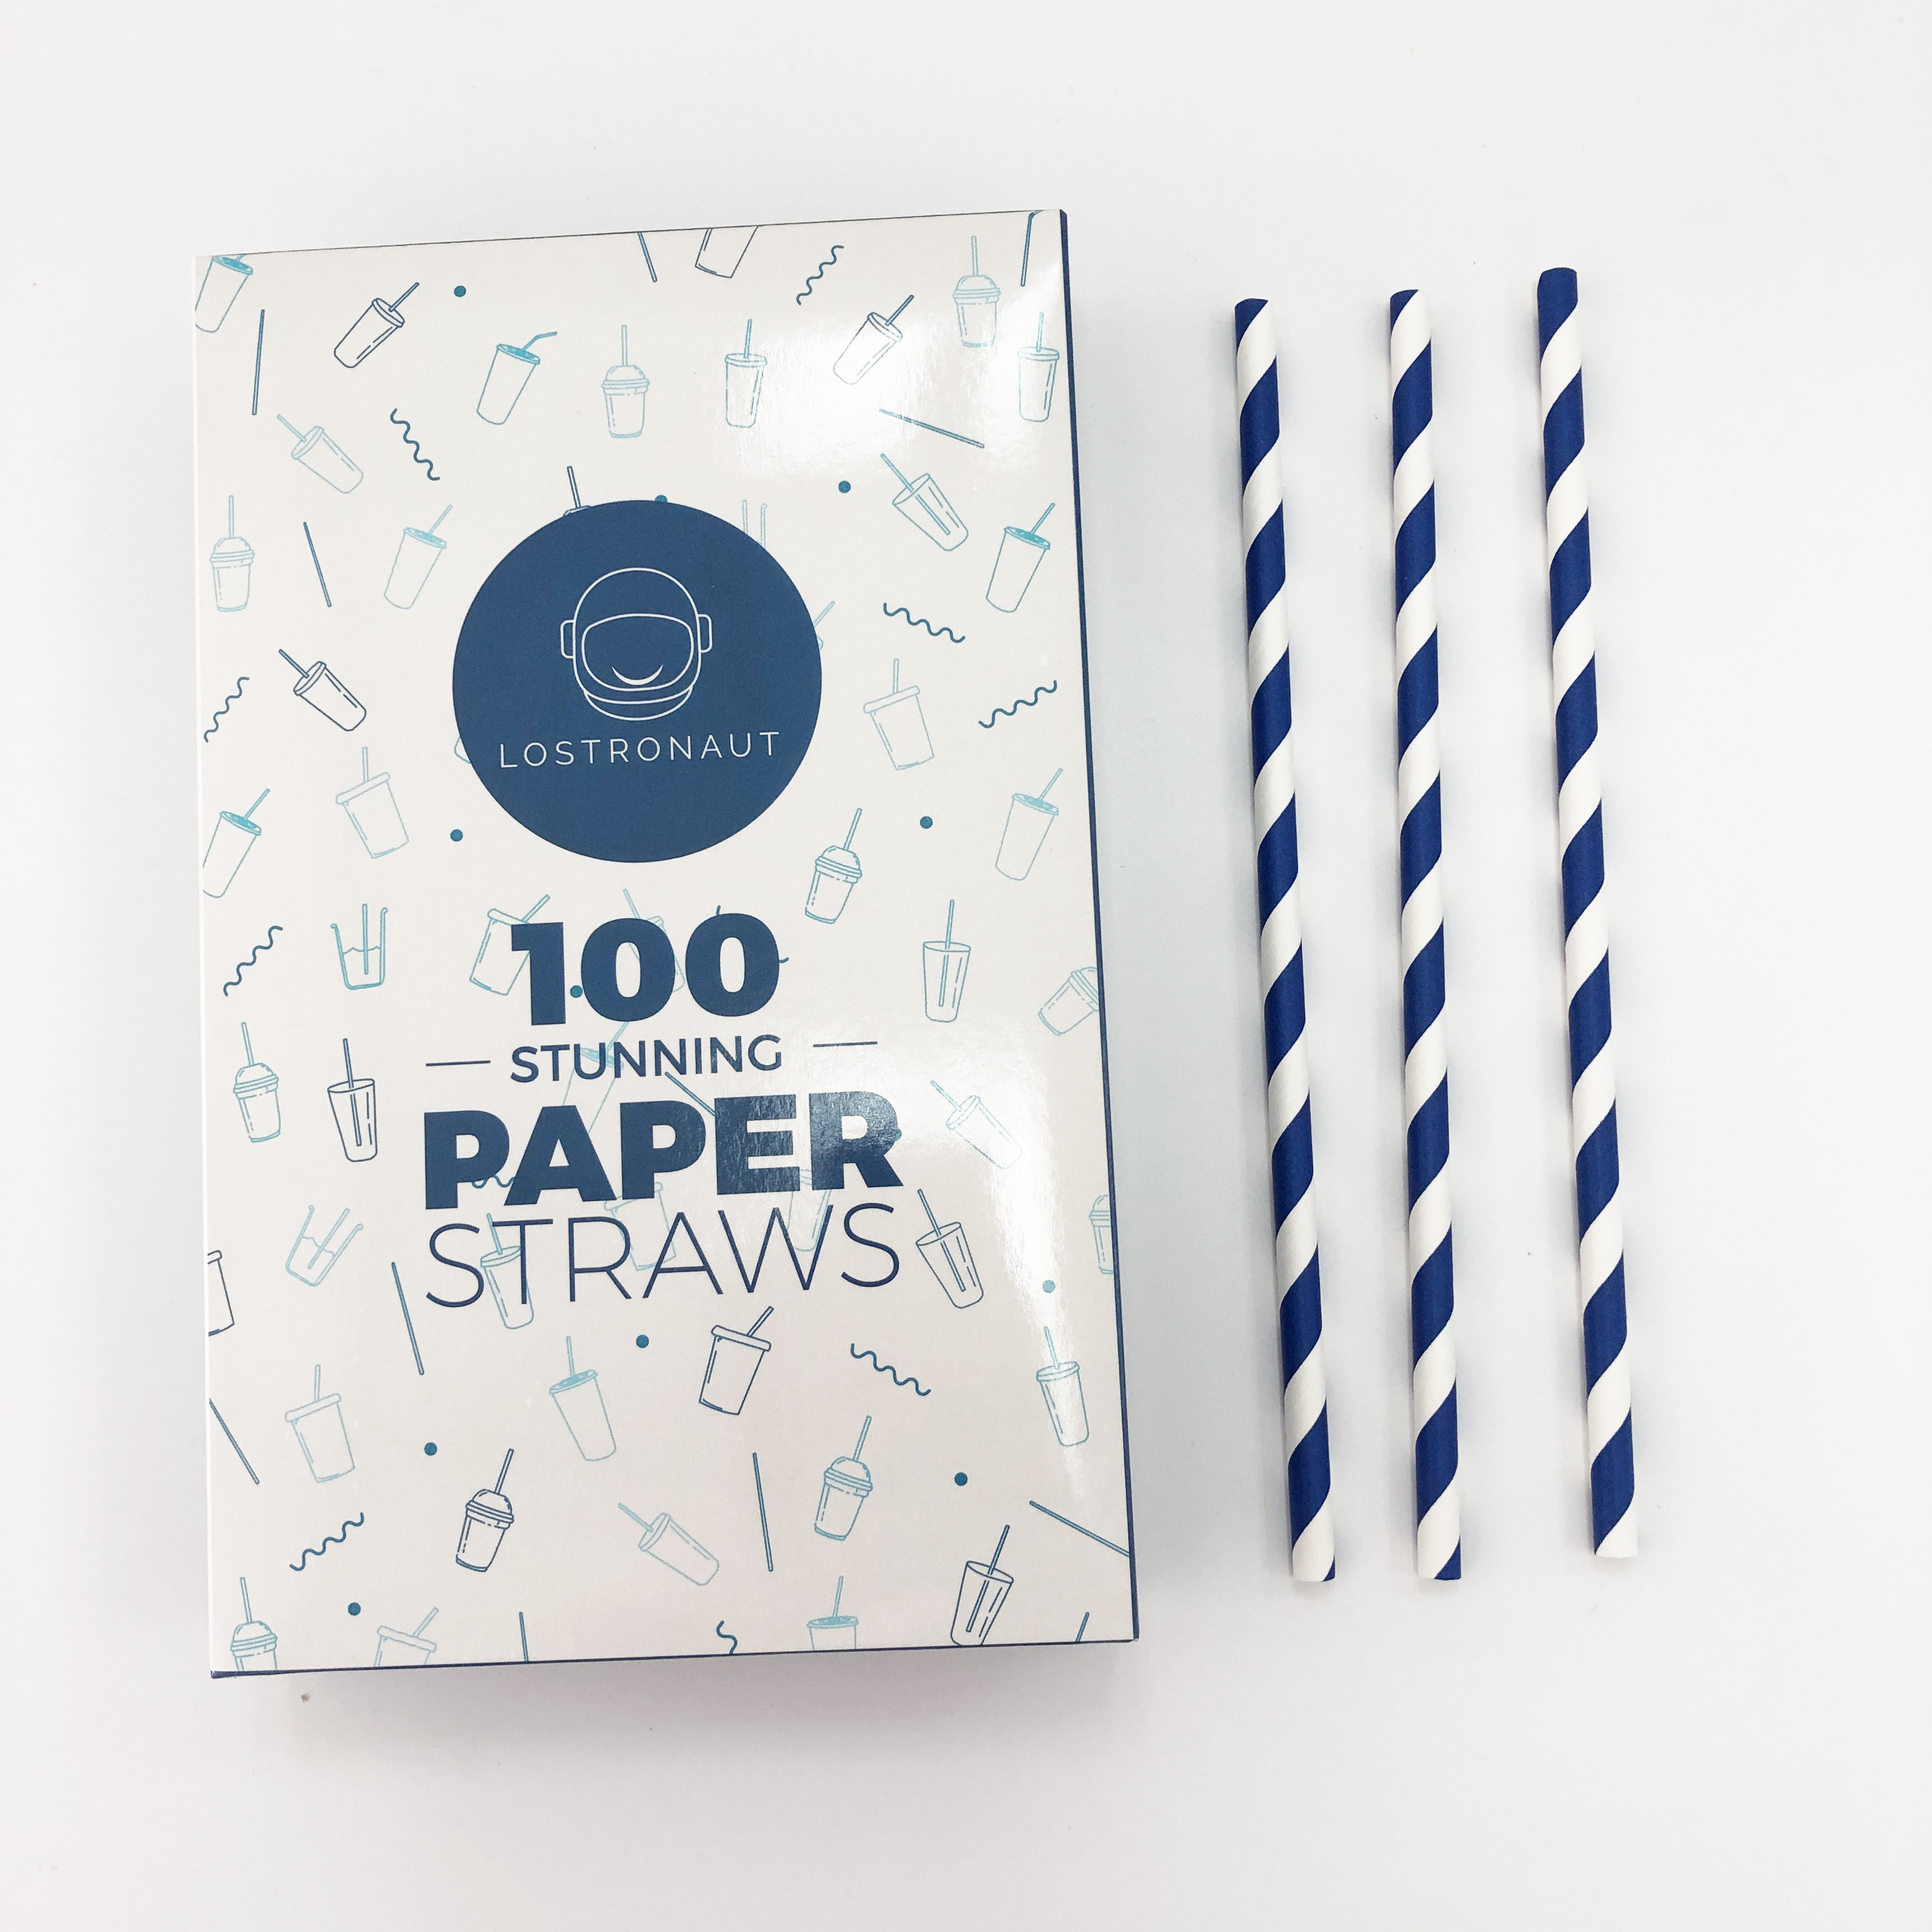 Paja de papel biodegradable desechable